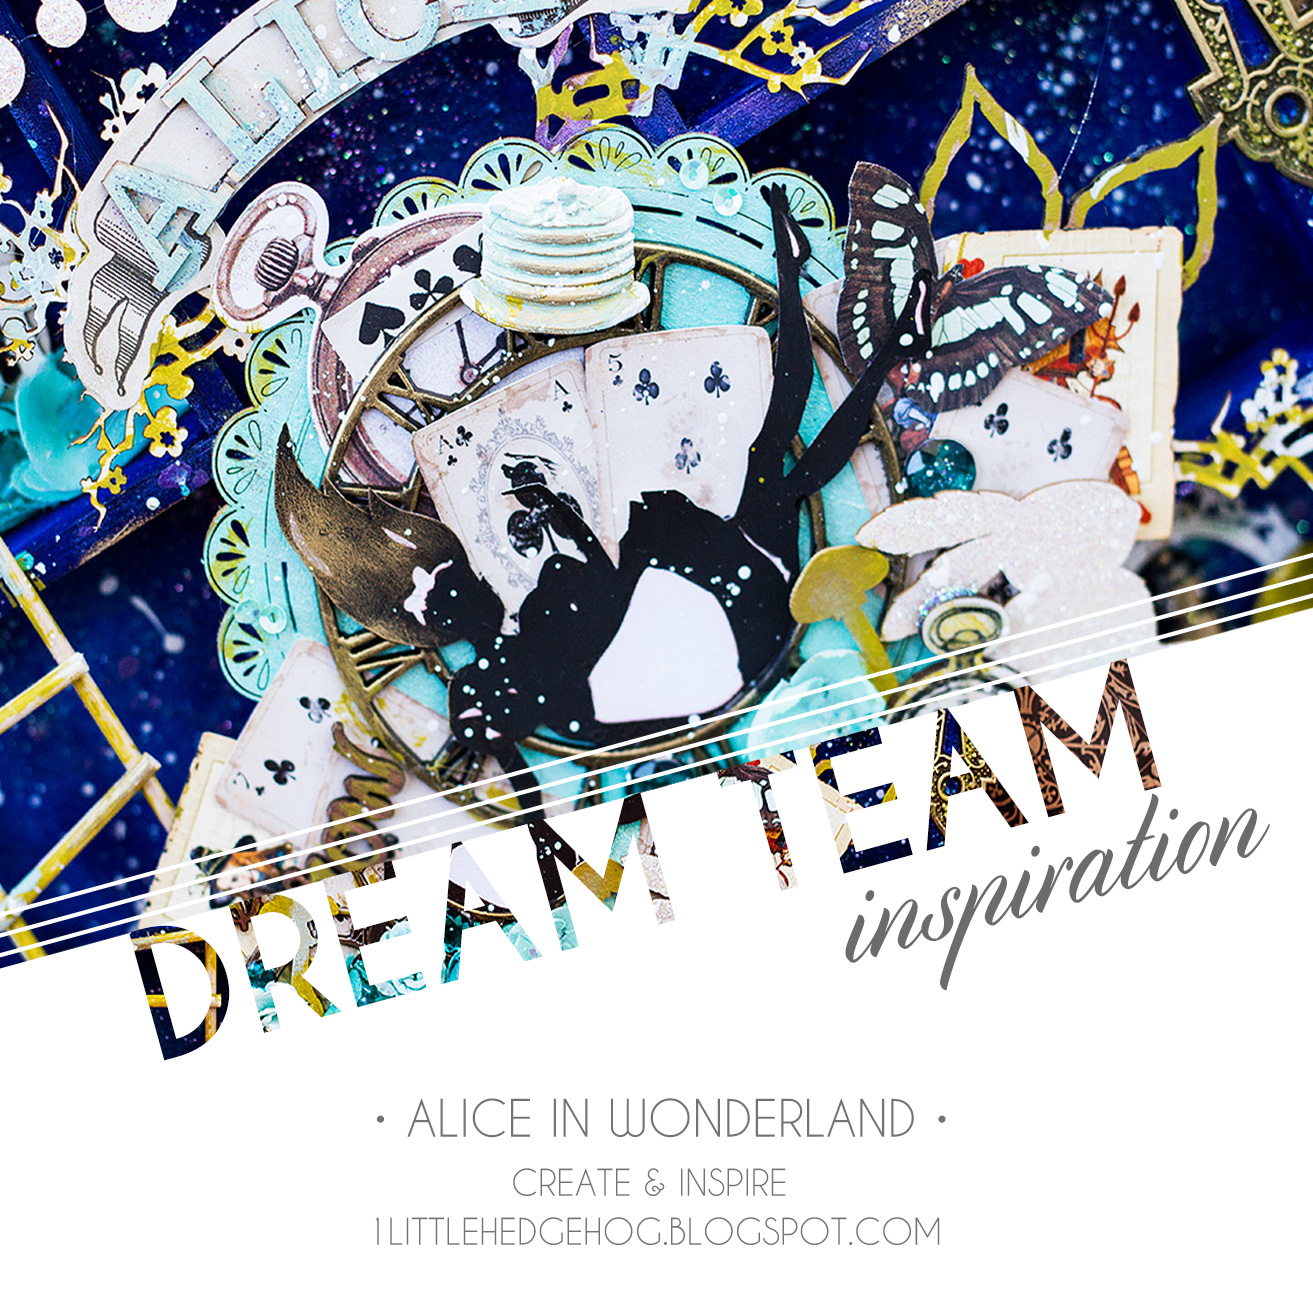 http://www.1littlehedgehog.blogspot.ru/2015/02/dream-team.html